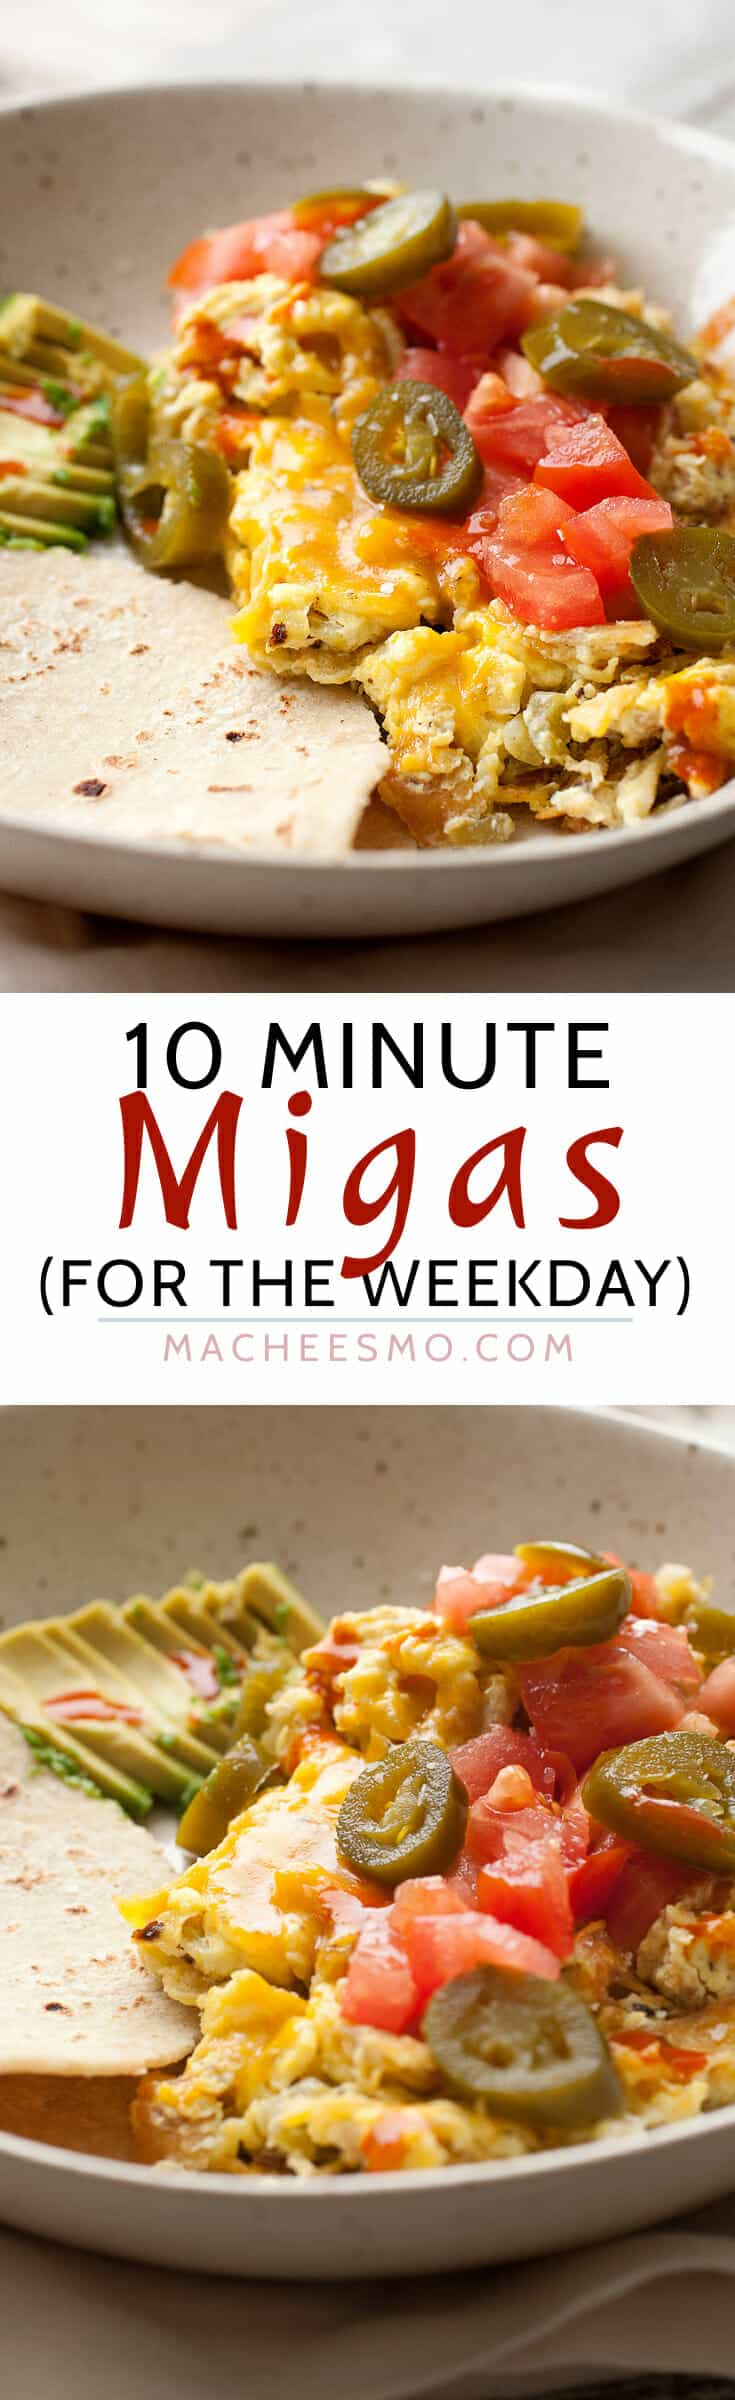 10-Minute Weekday Migas: Breakfast during the week is a huge struggle. But, we can all do better than a bowl of cereal. This big bowl of delicious tex-mex flavors is done in literally 10 minutes. Dig in! | macheesmo.com